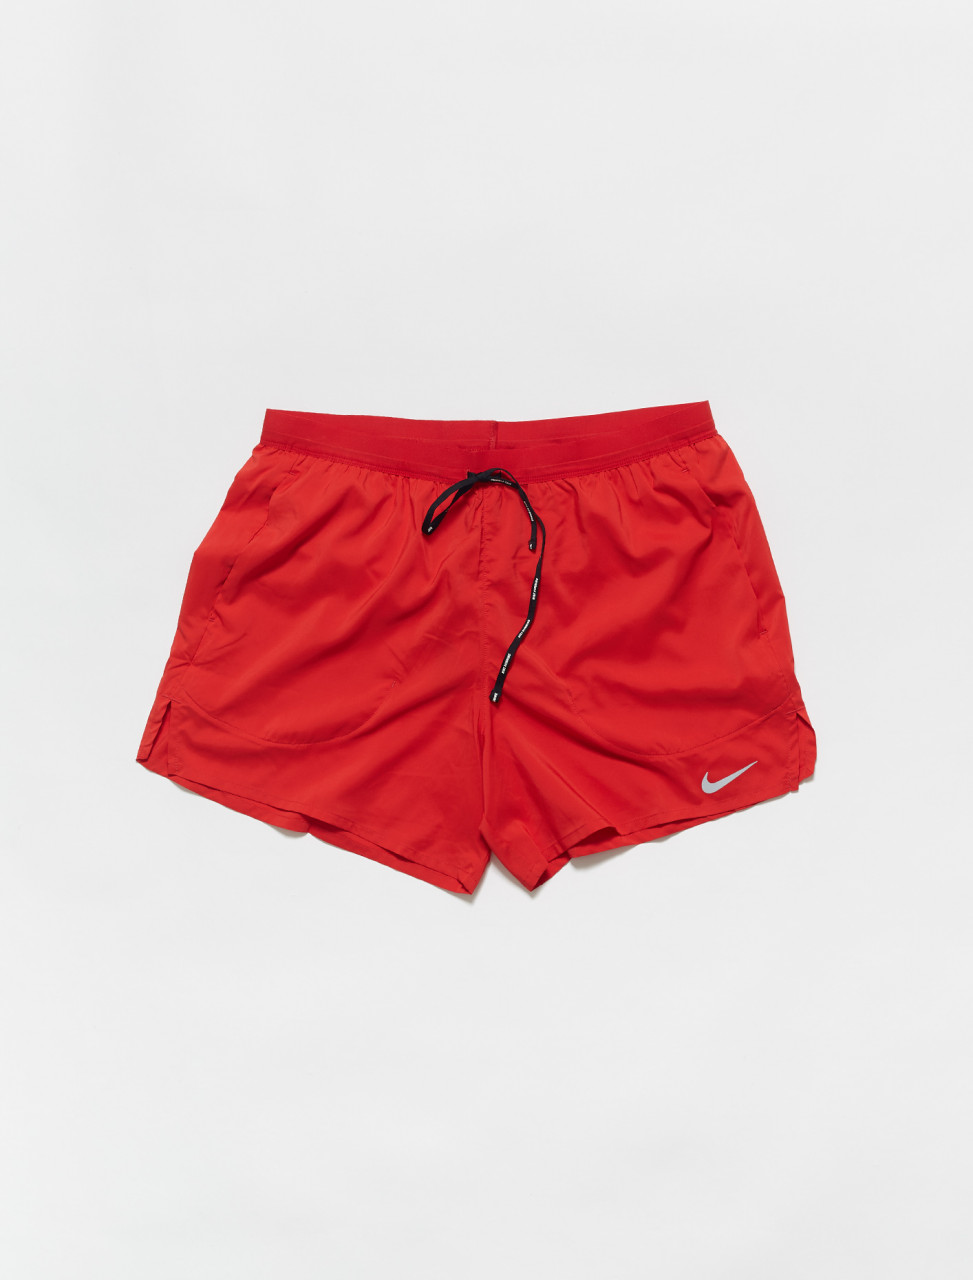 CJ5453-657 NIKE FLEX STRIDE BRIEF RUNNING SHORTS IN UNIVERSITY RED